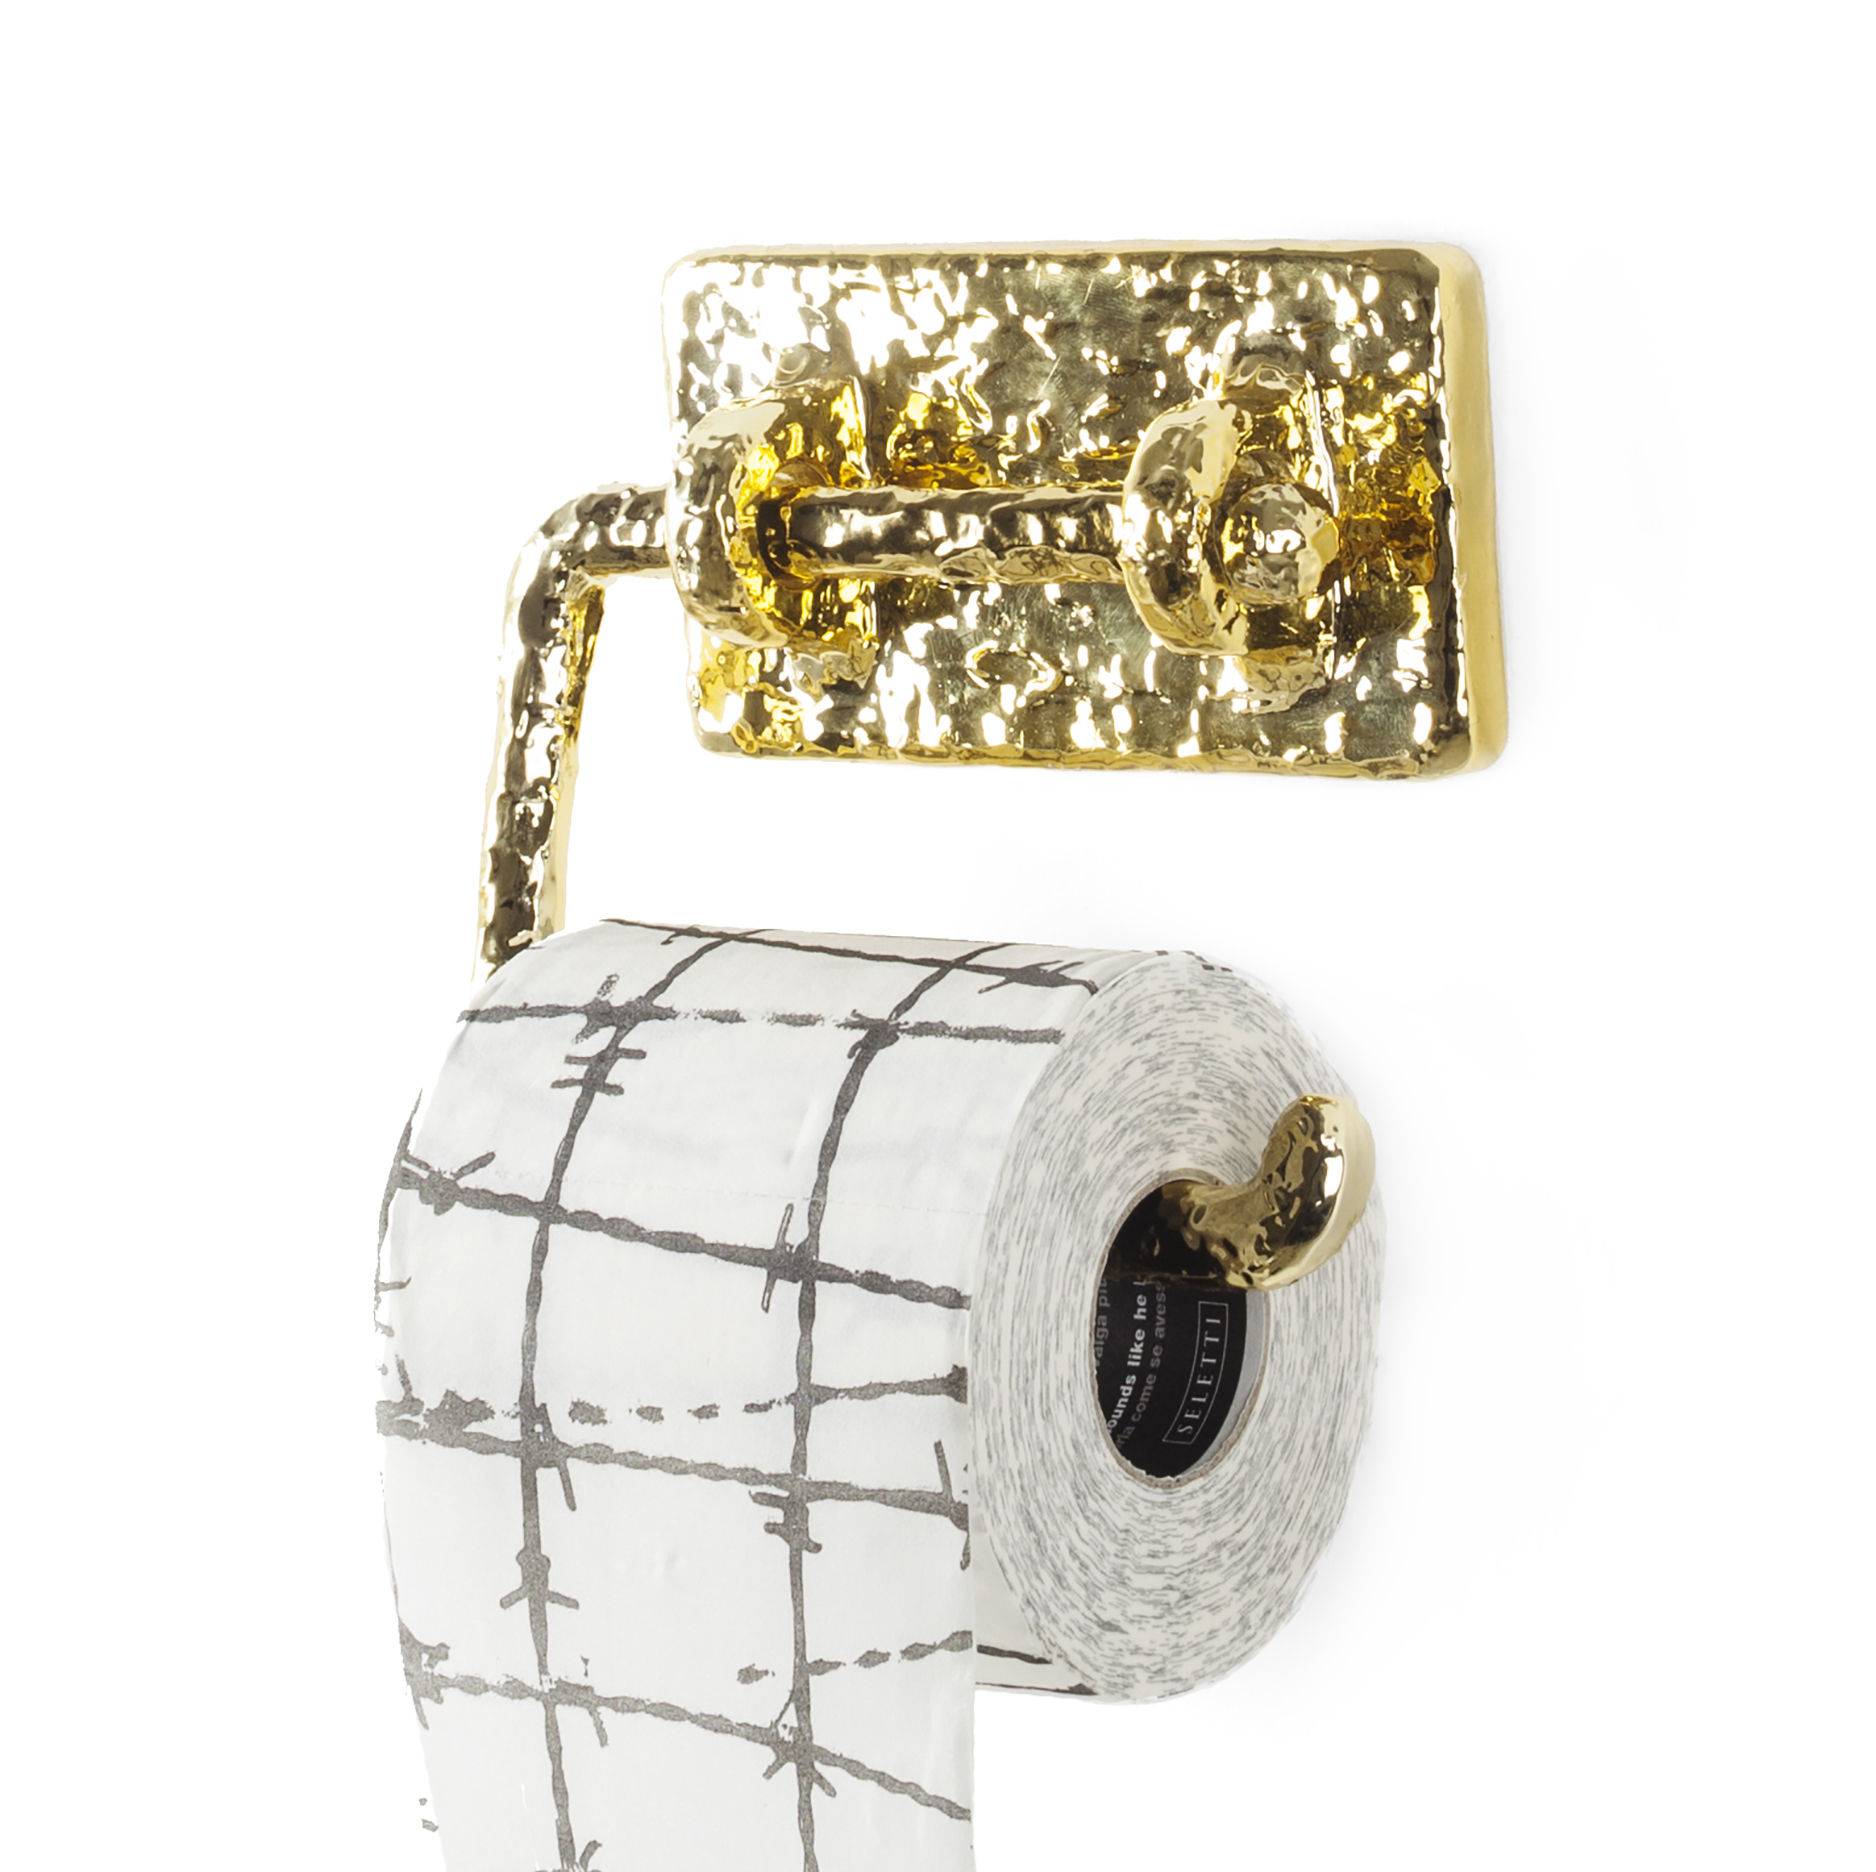 Accessories - Bathroom Accessories - Mauriziø Toilet paper dispenser - / Or by Seletti - Laiton - Brass, Resin